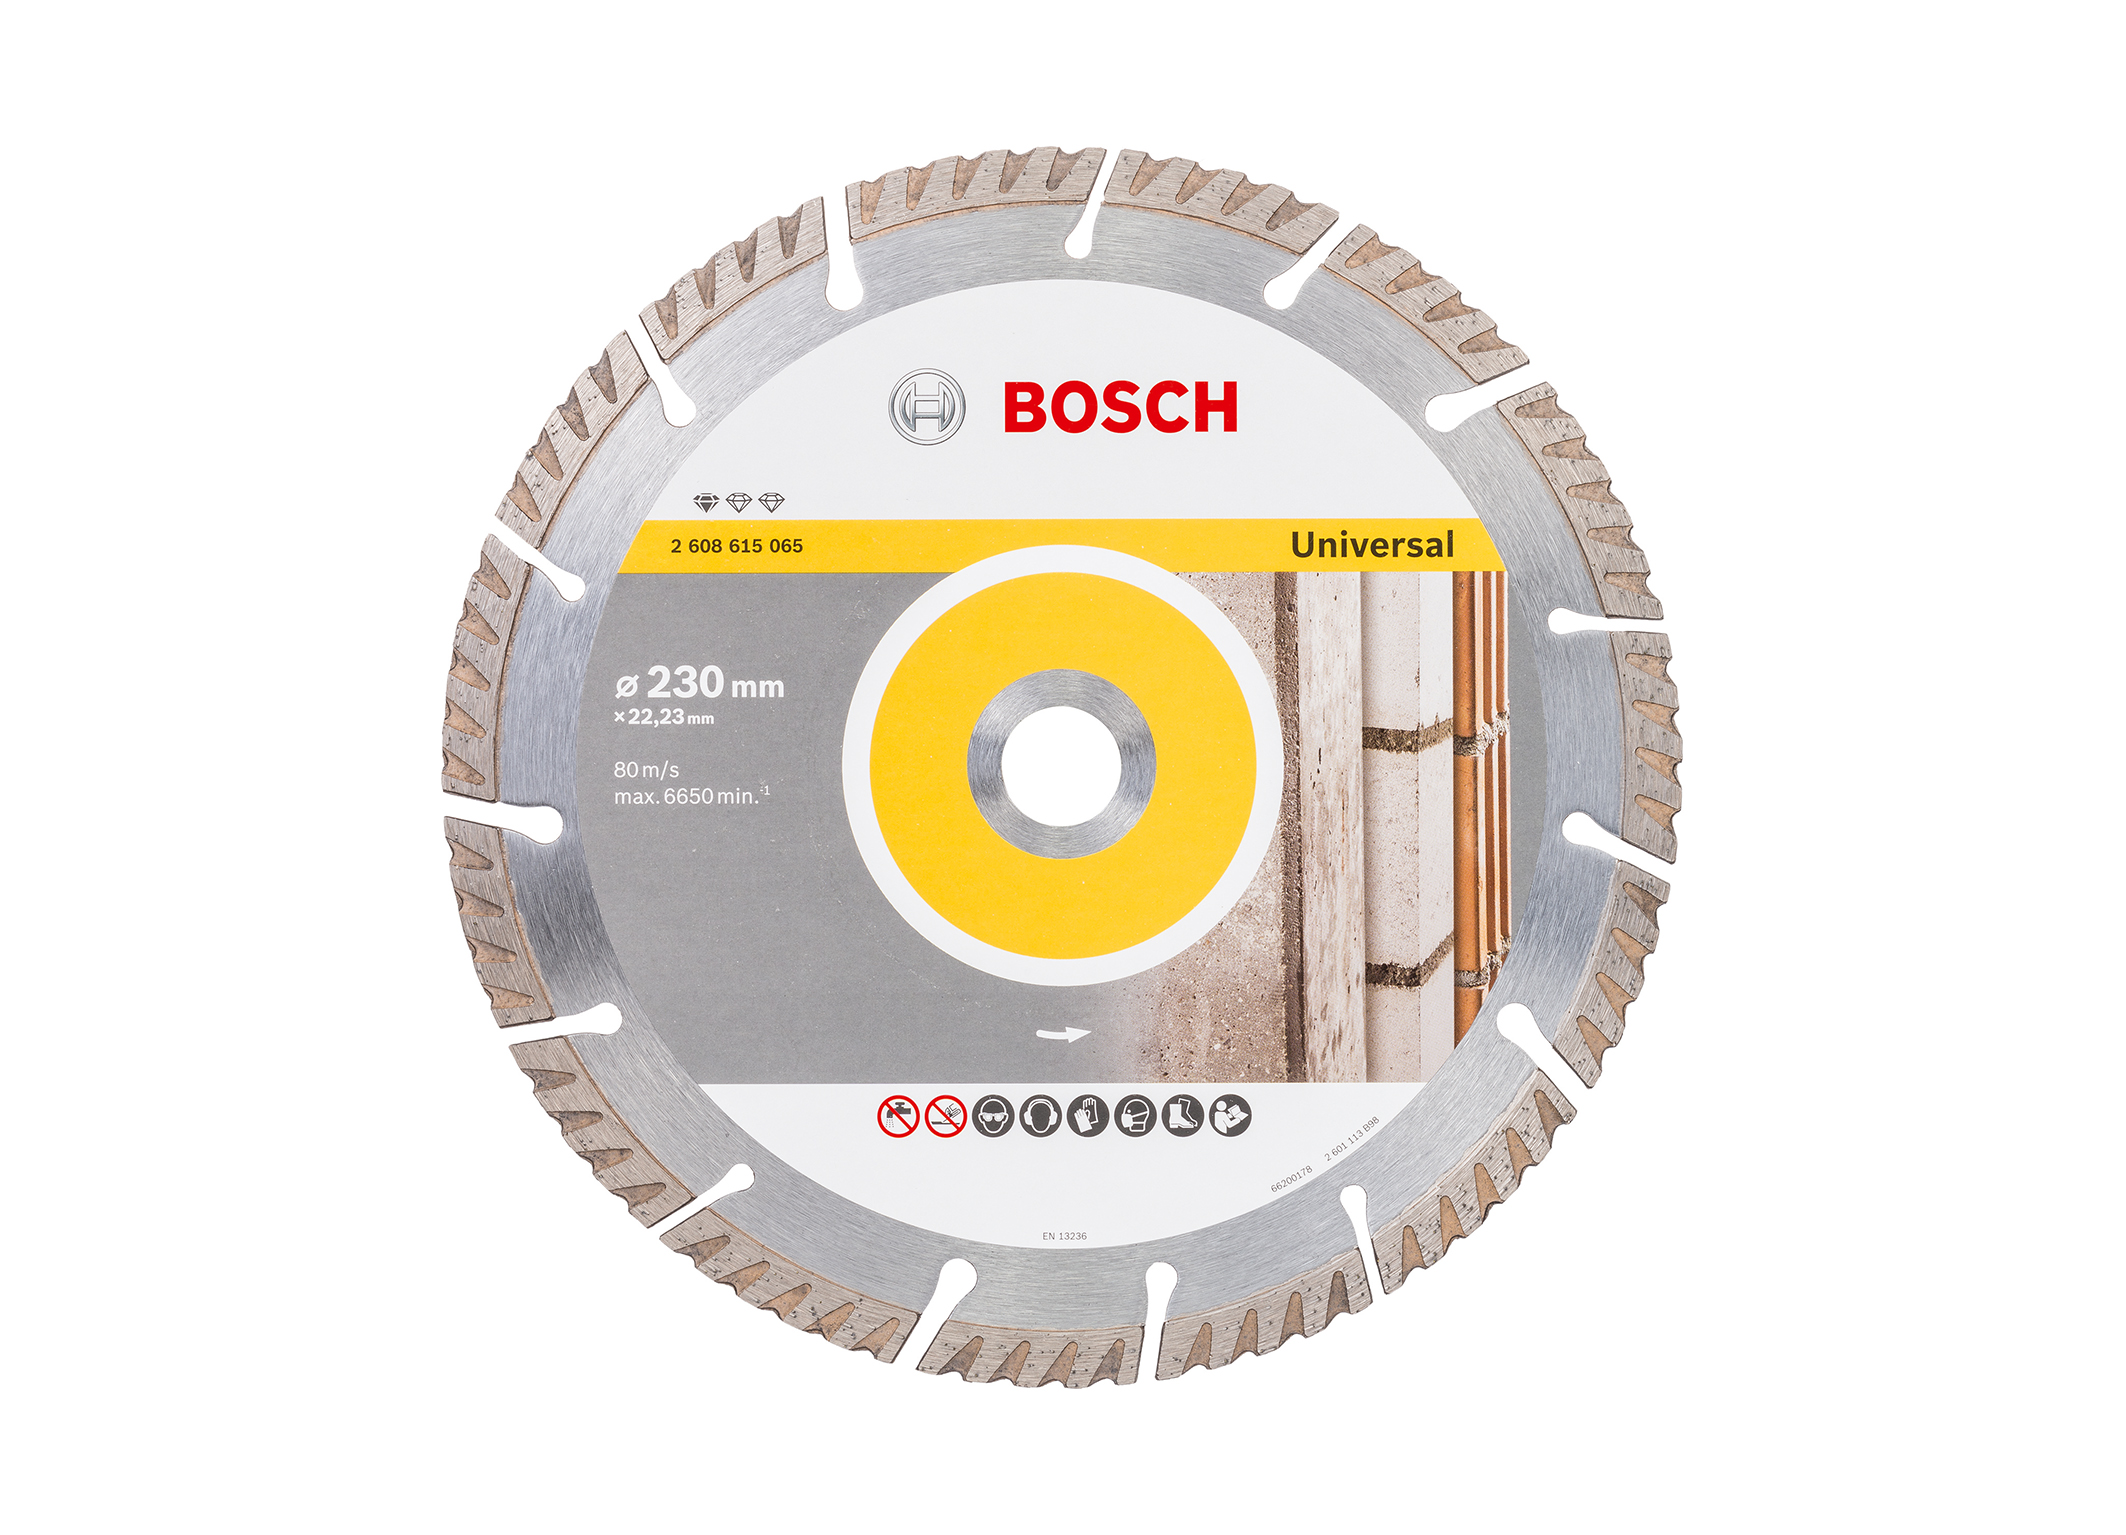 """30 percent faster due to optimized design: Bosch """"Standard for Universal"""" diamond cutting disk"""